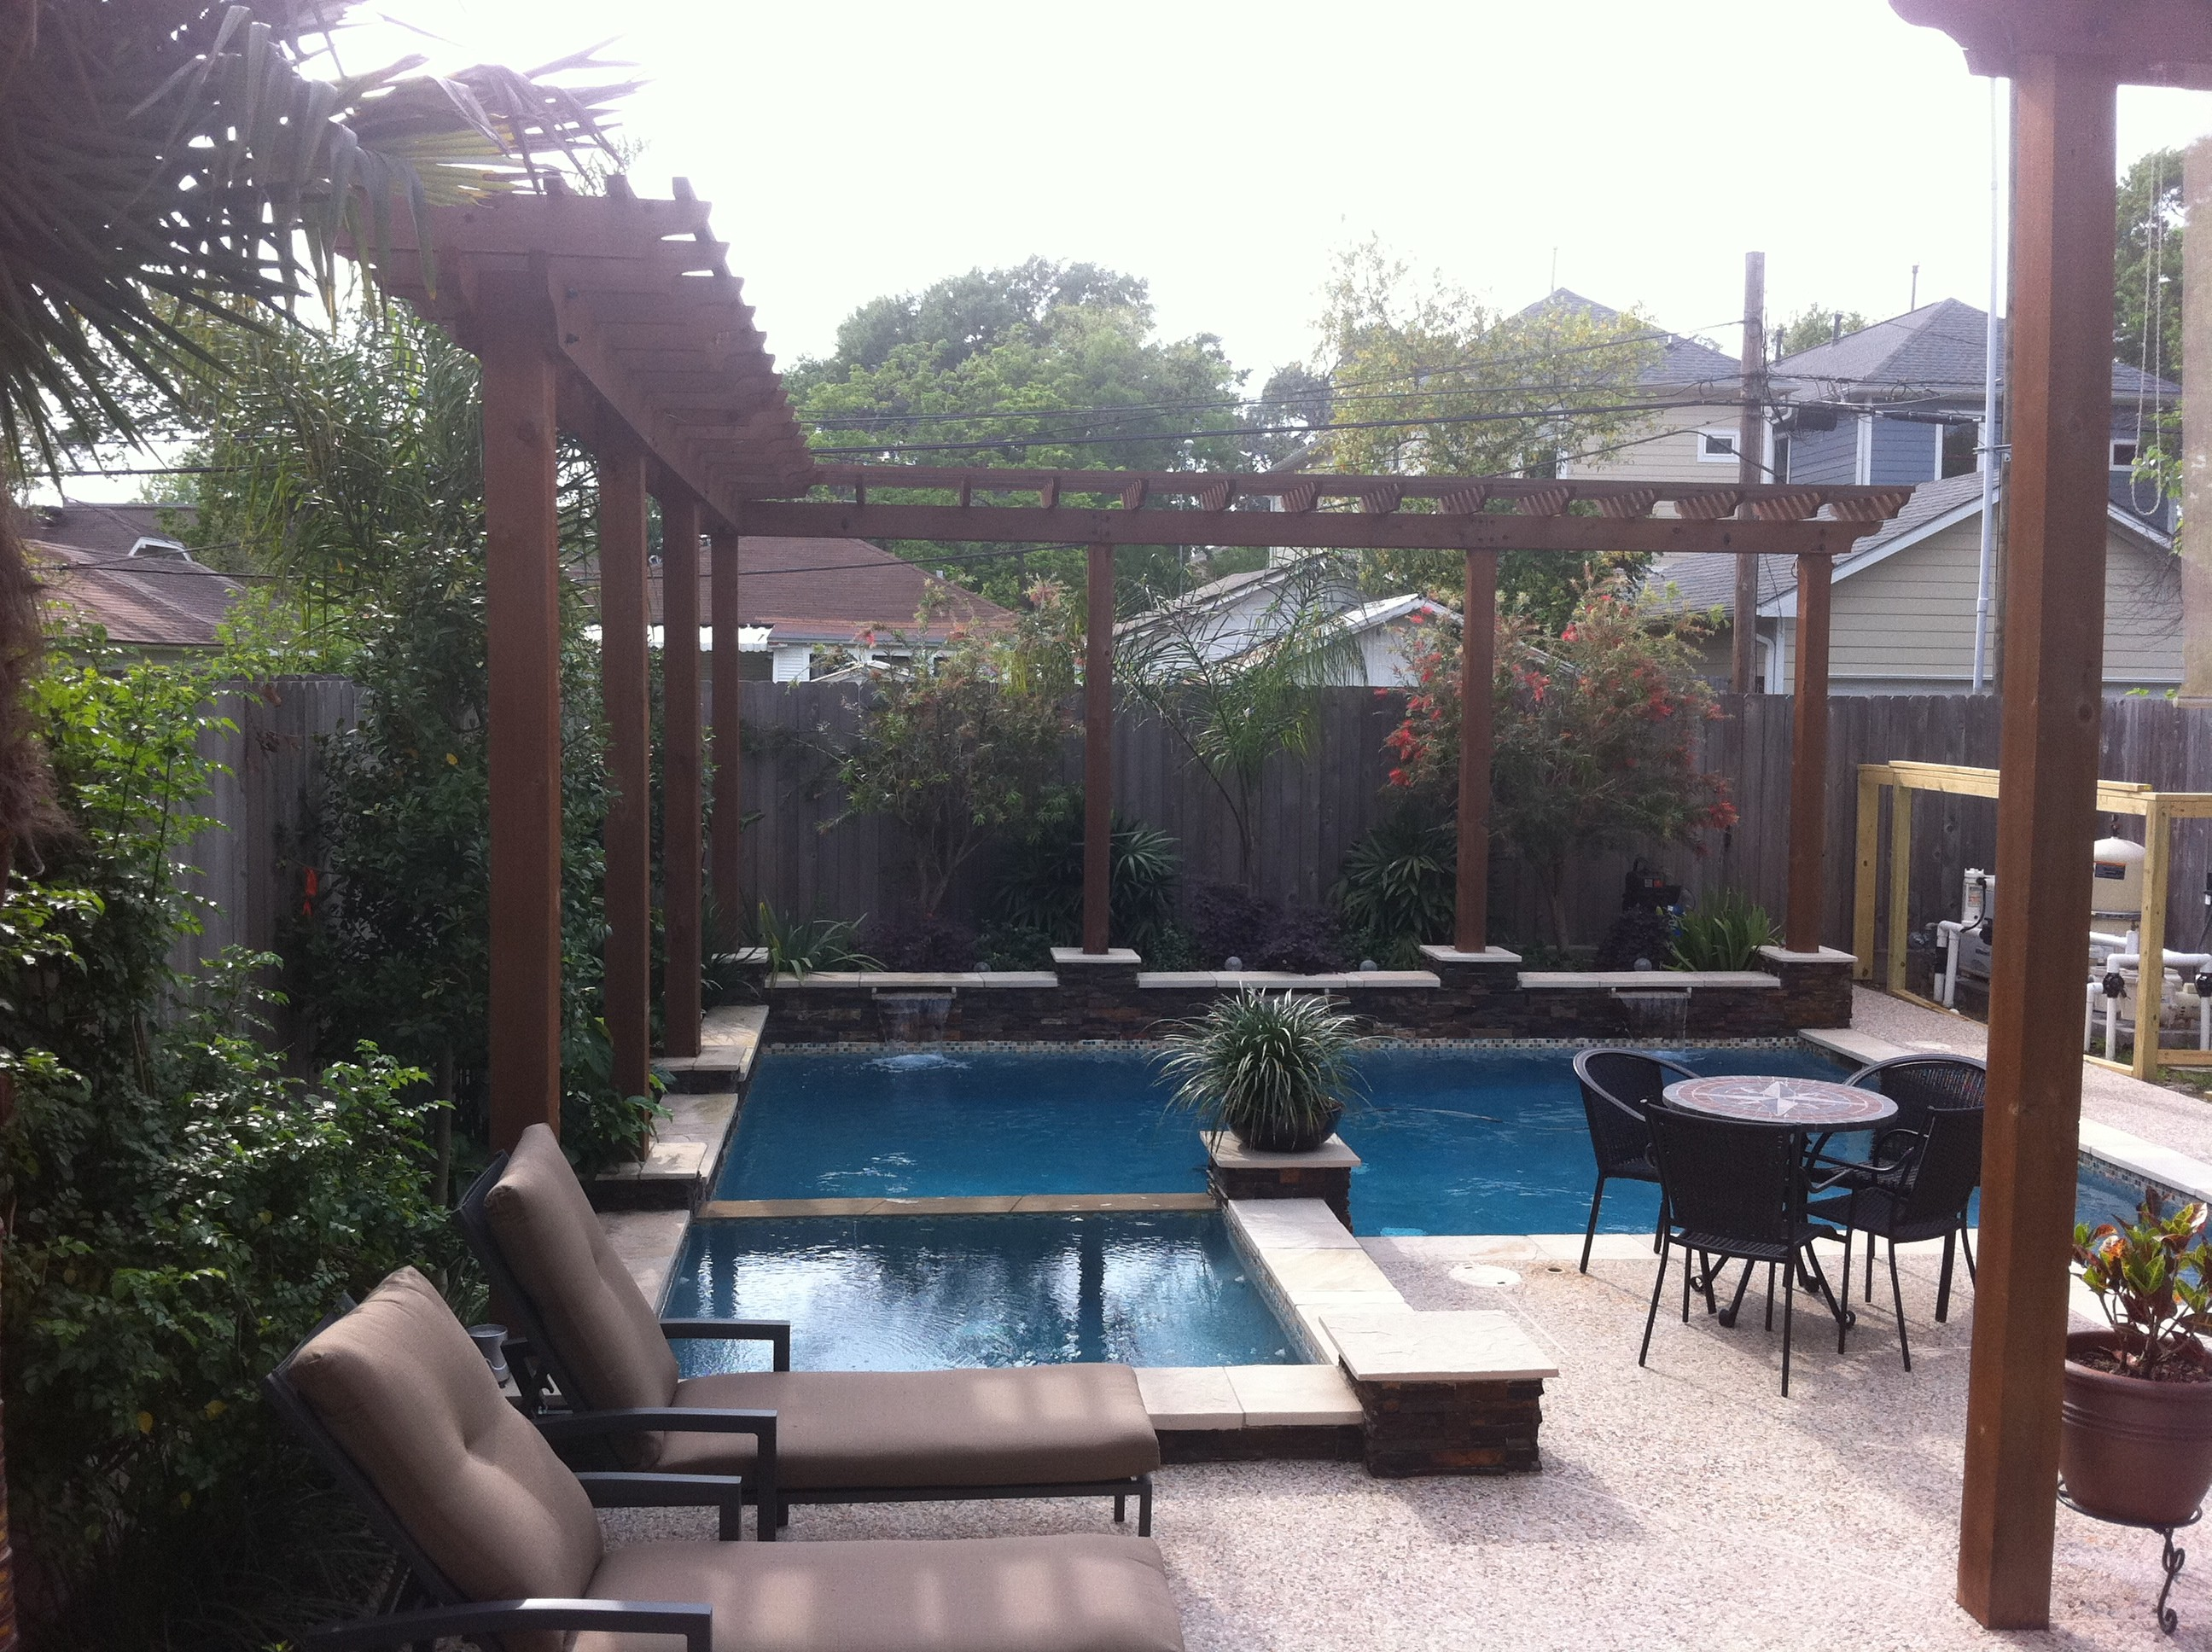 Tomball pool designs katy kingwood cypress spring for Pool design katy tx